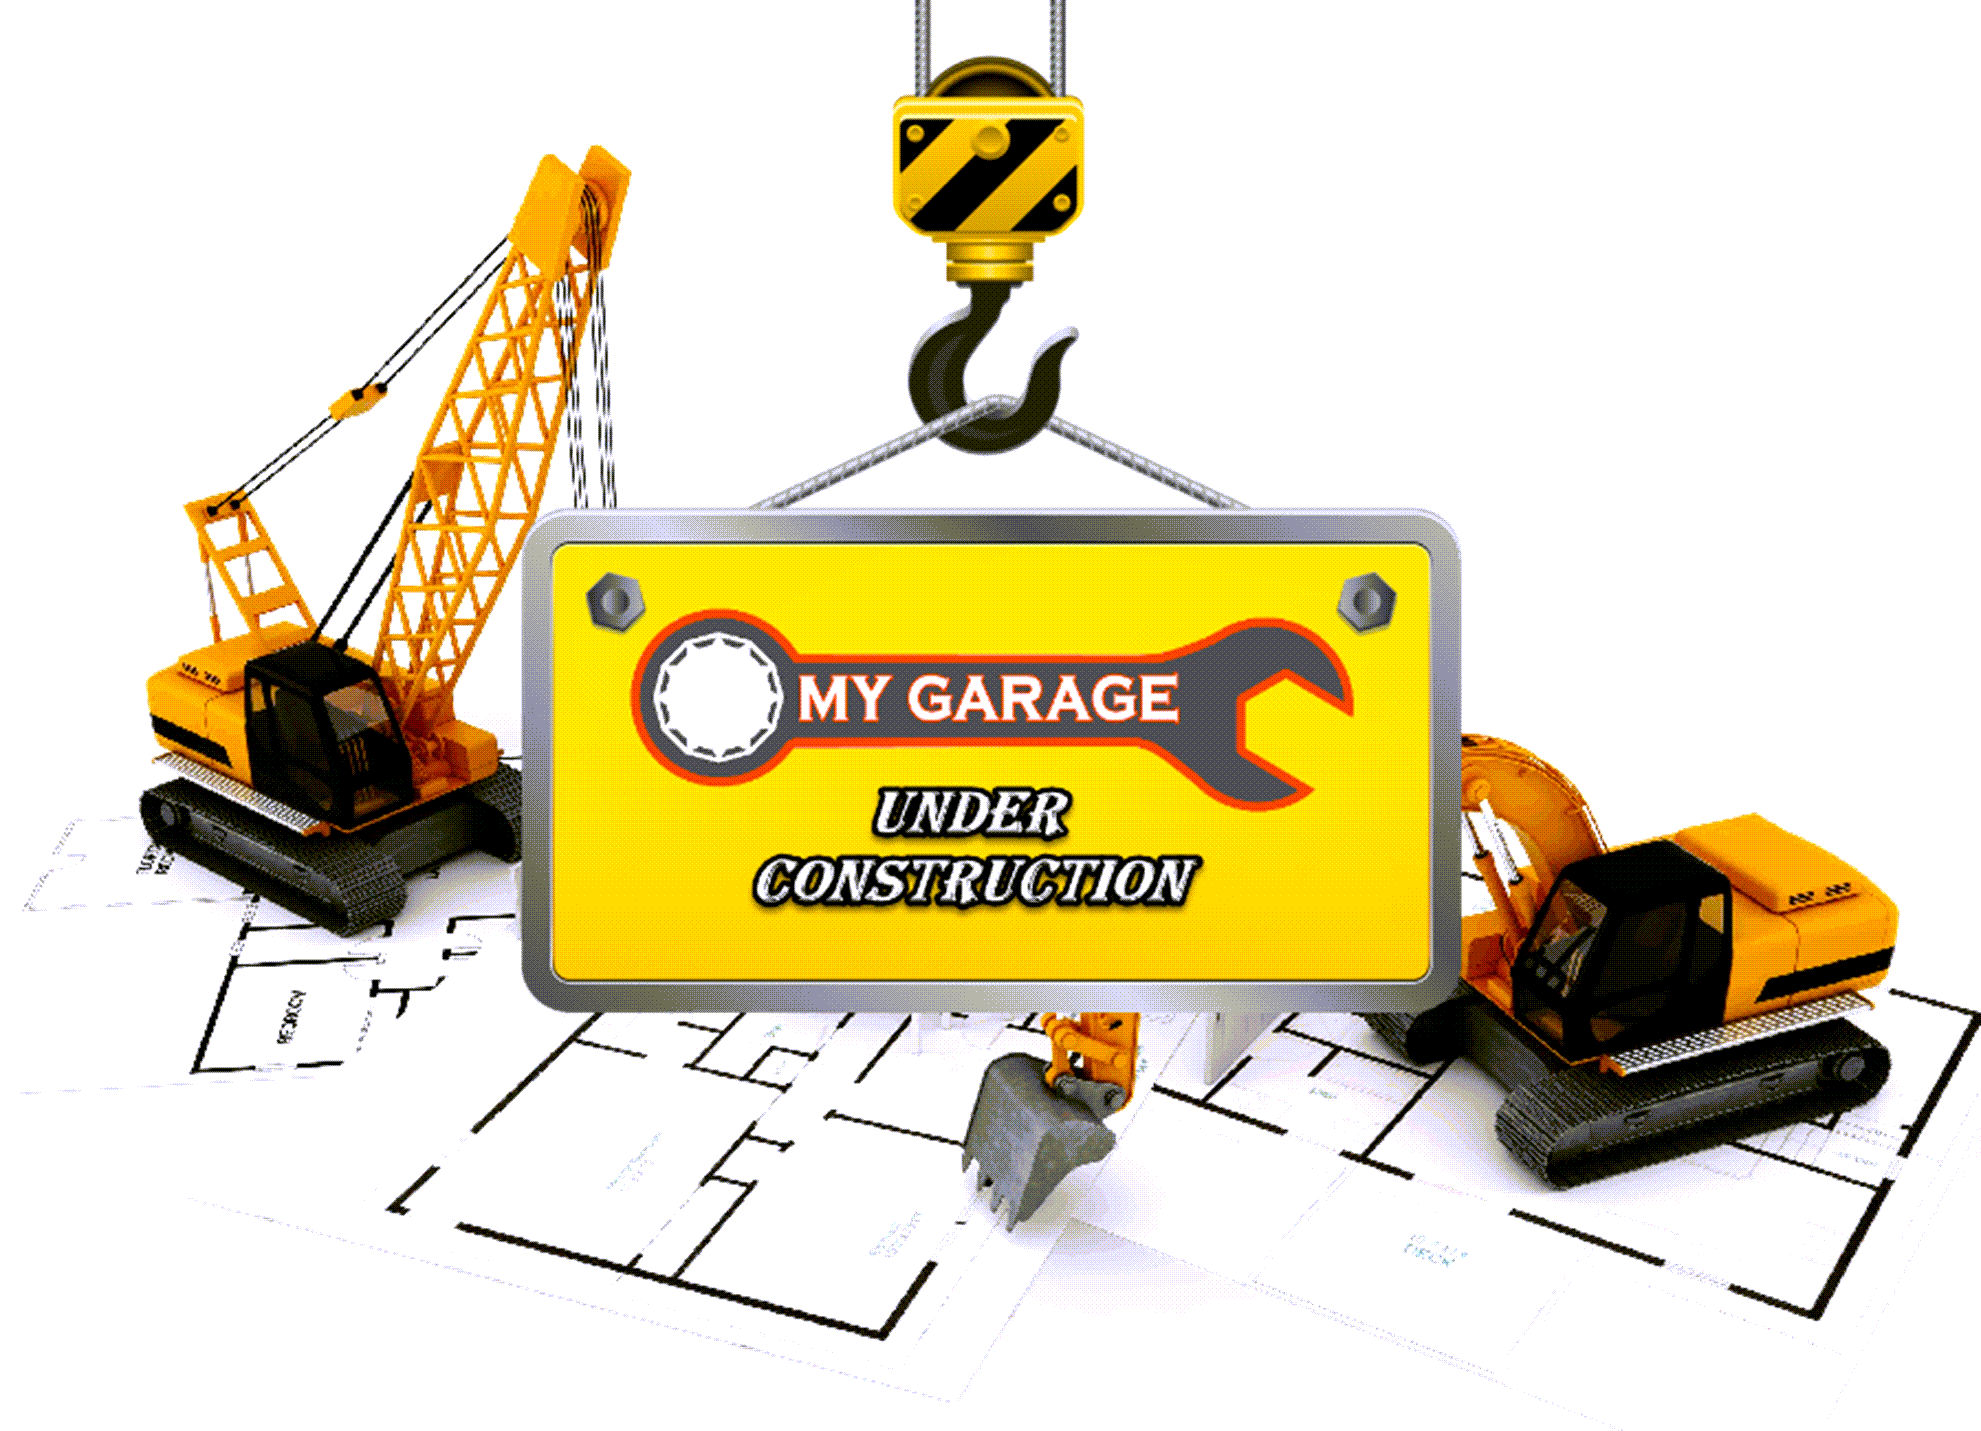 My Garage Is Under Construction